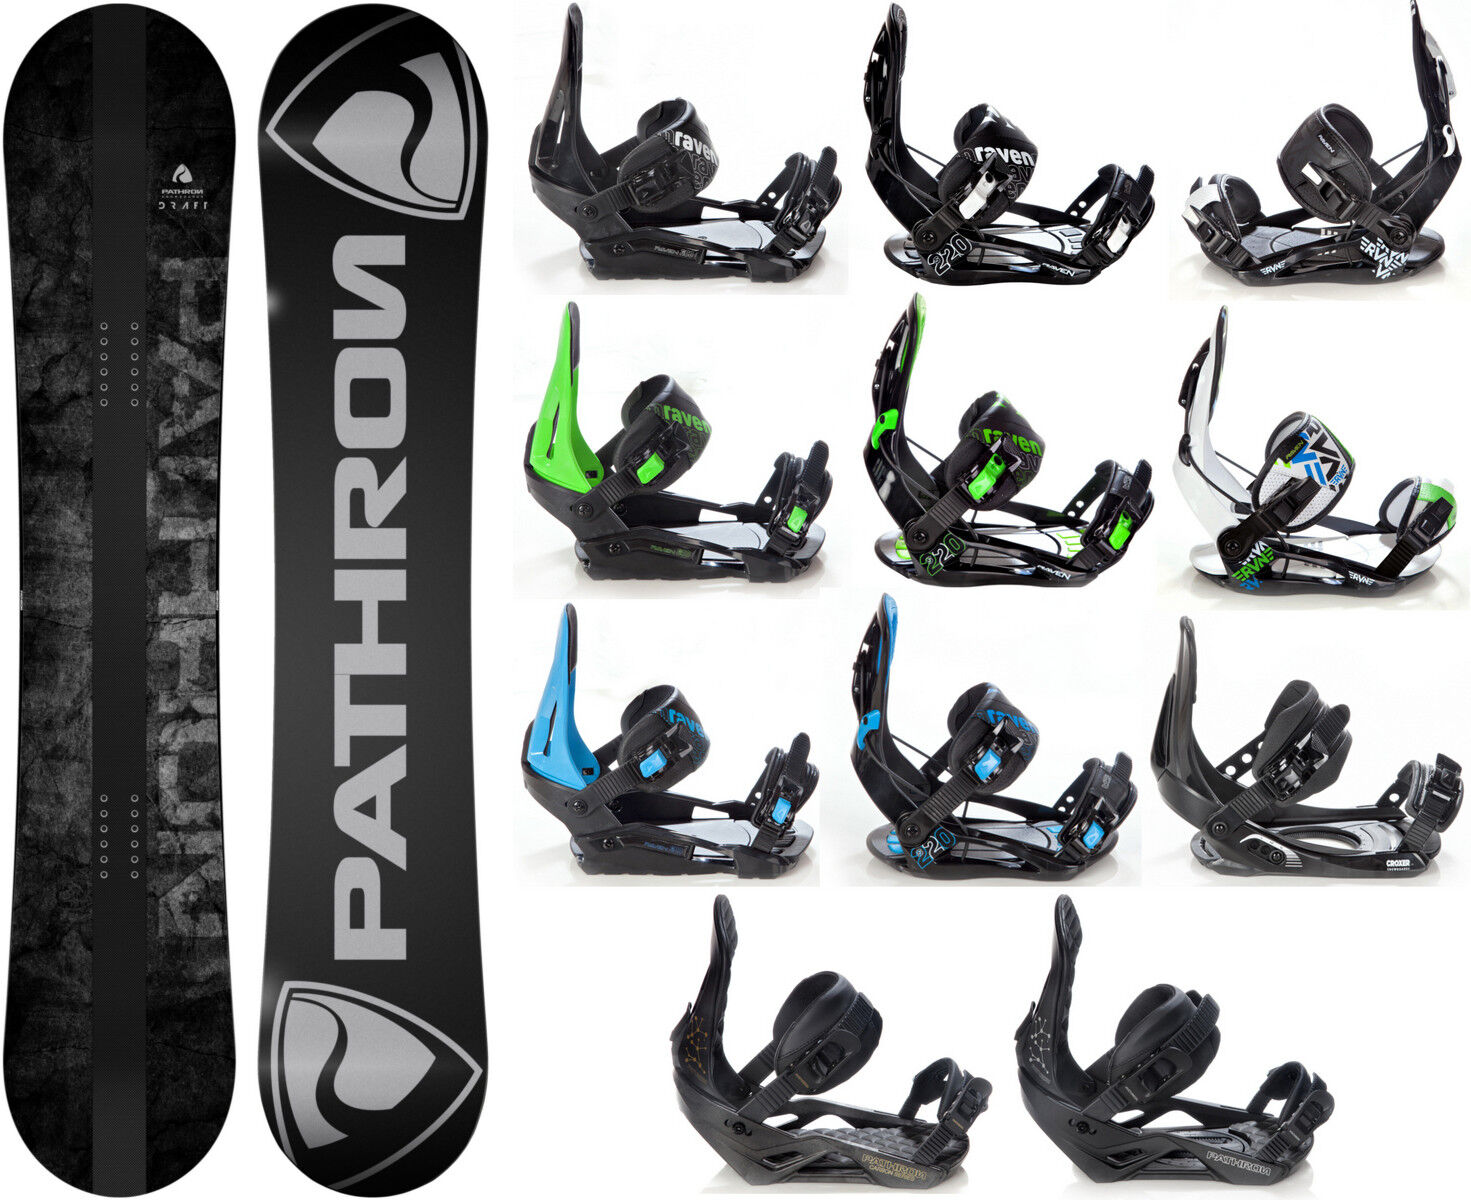 Snowboard Pathron Draft Grey Carbon + Bindings Raven S, M, M L, L or XL- New